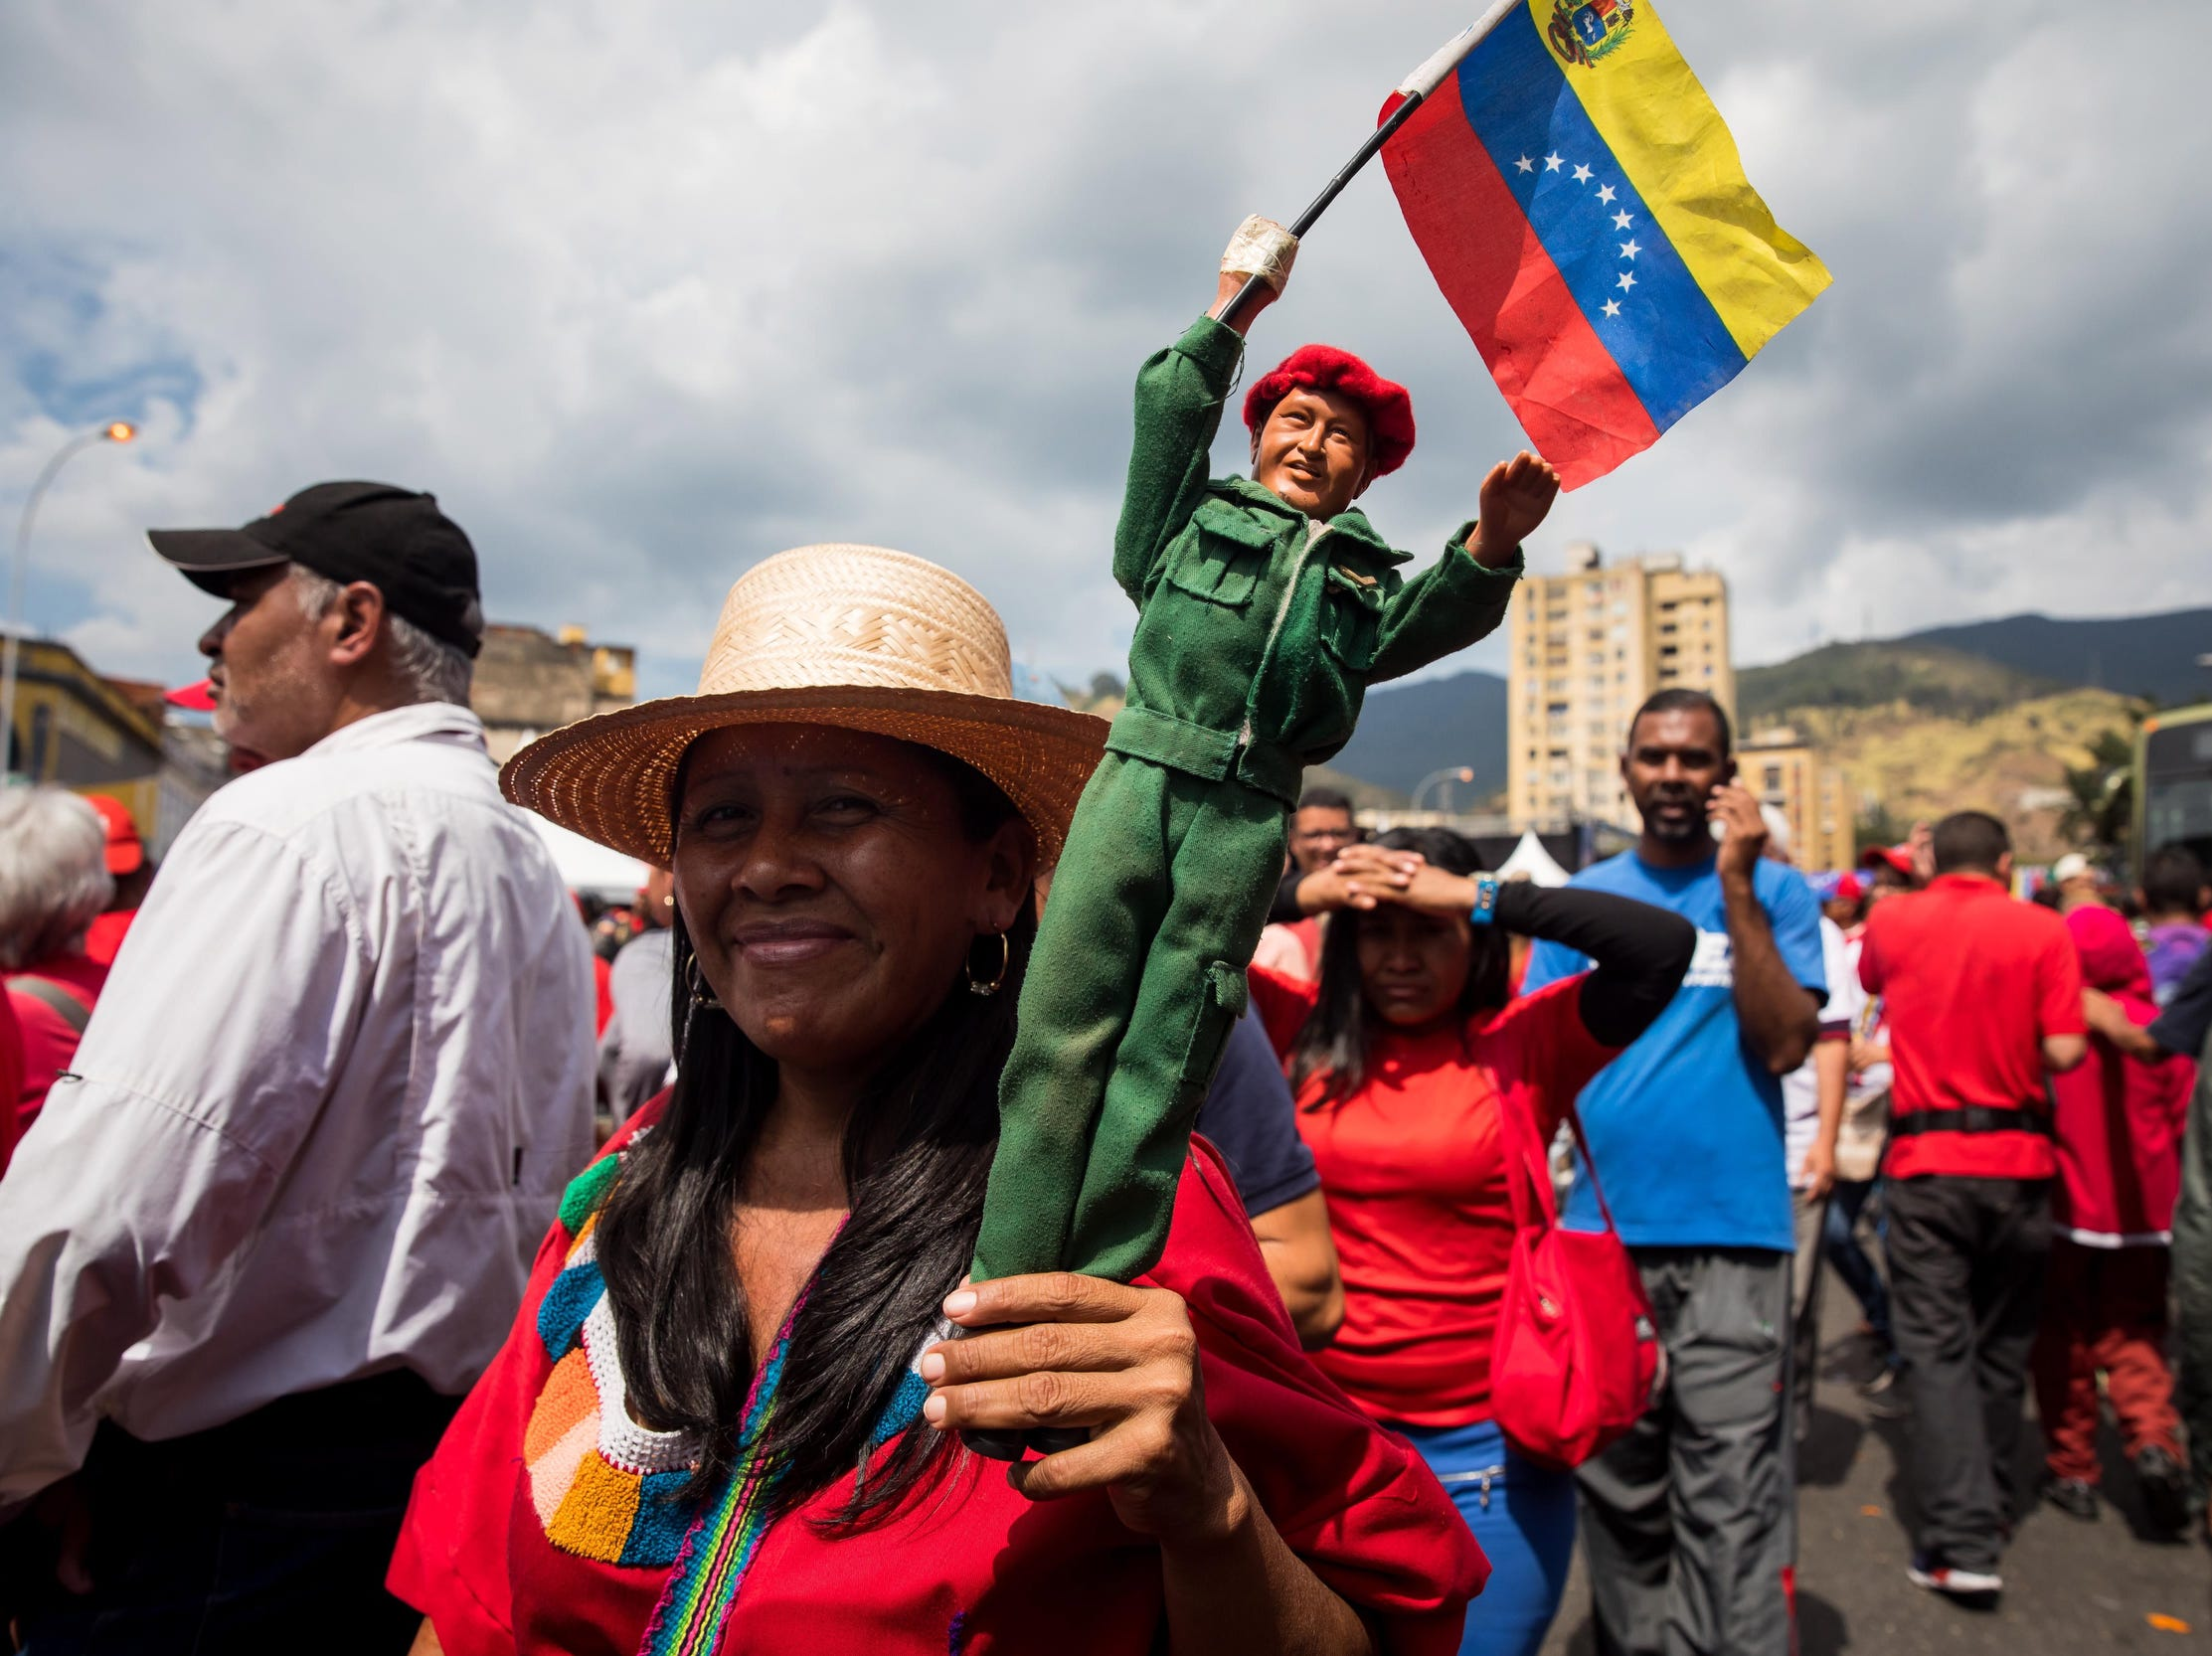 Supporters of Venezuelan President Nicolas Maduro celebrate his investiture, in Caracas, Venezuela, Jan. 10, 2019. The has fallen into a new deep political crisis after National Assembly leader Juan Guaido declared himself interim president of Venezuela and promised to guide the country toward a new election as he consider last May's election not valid.